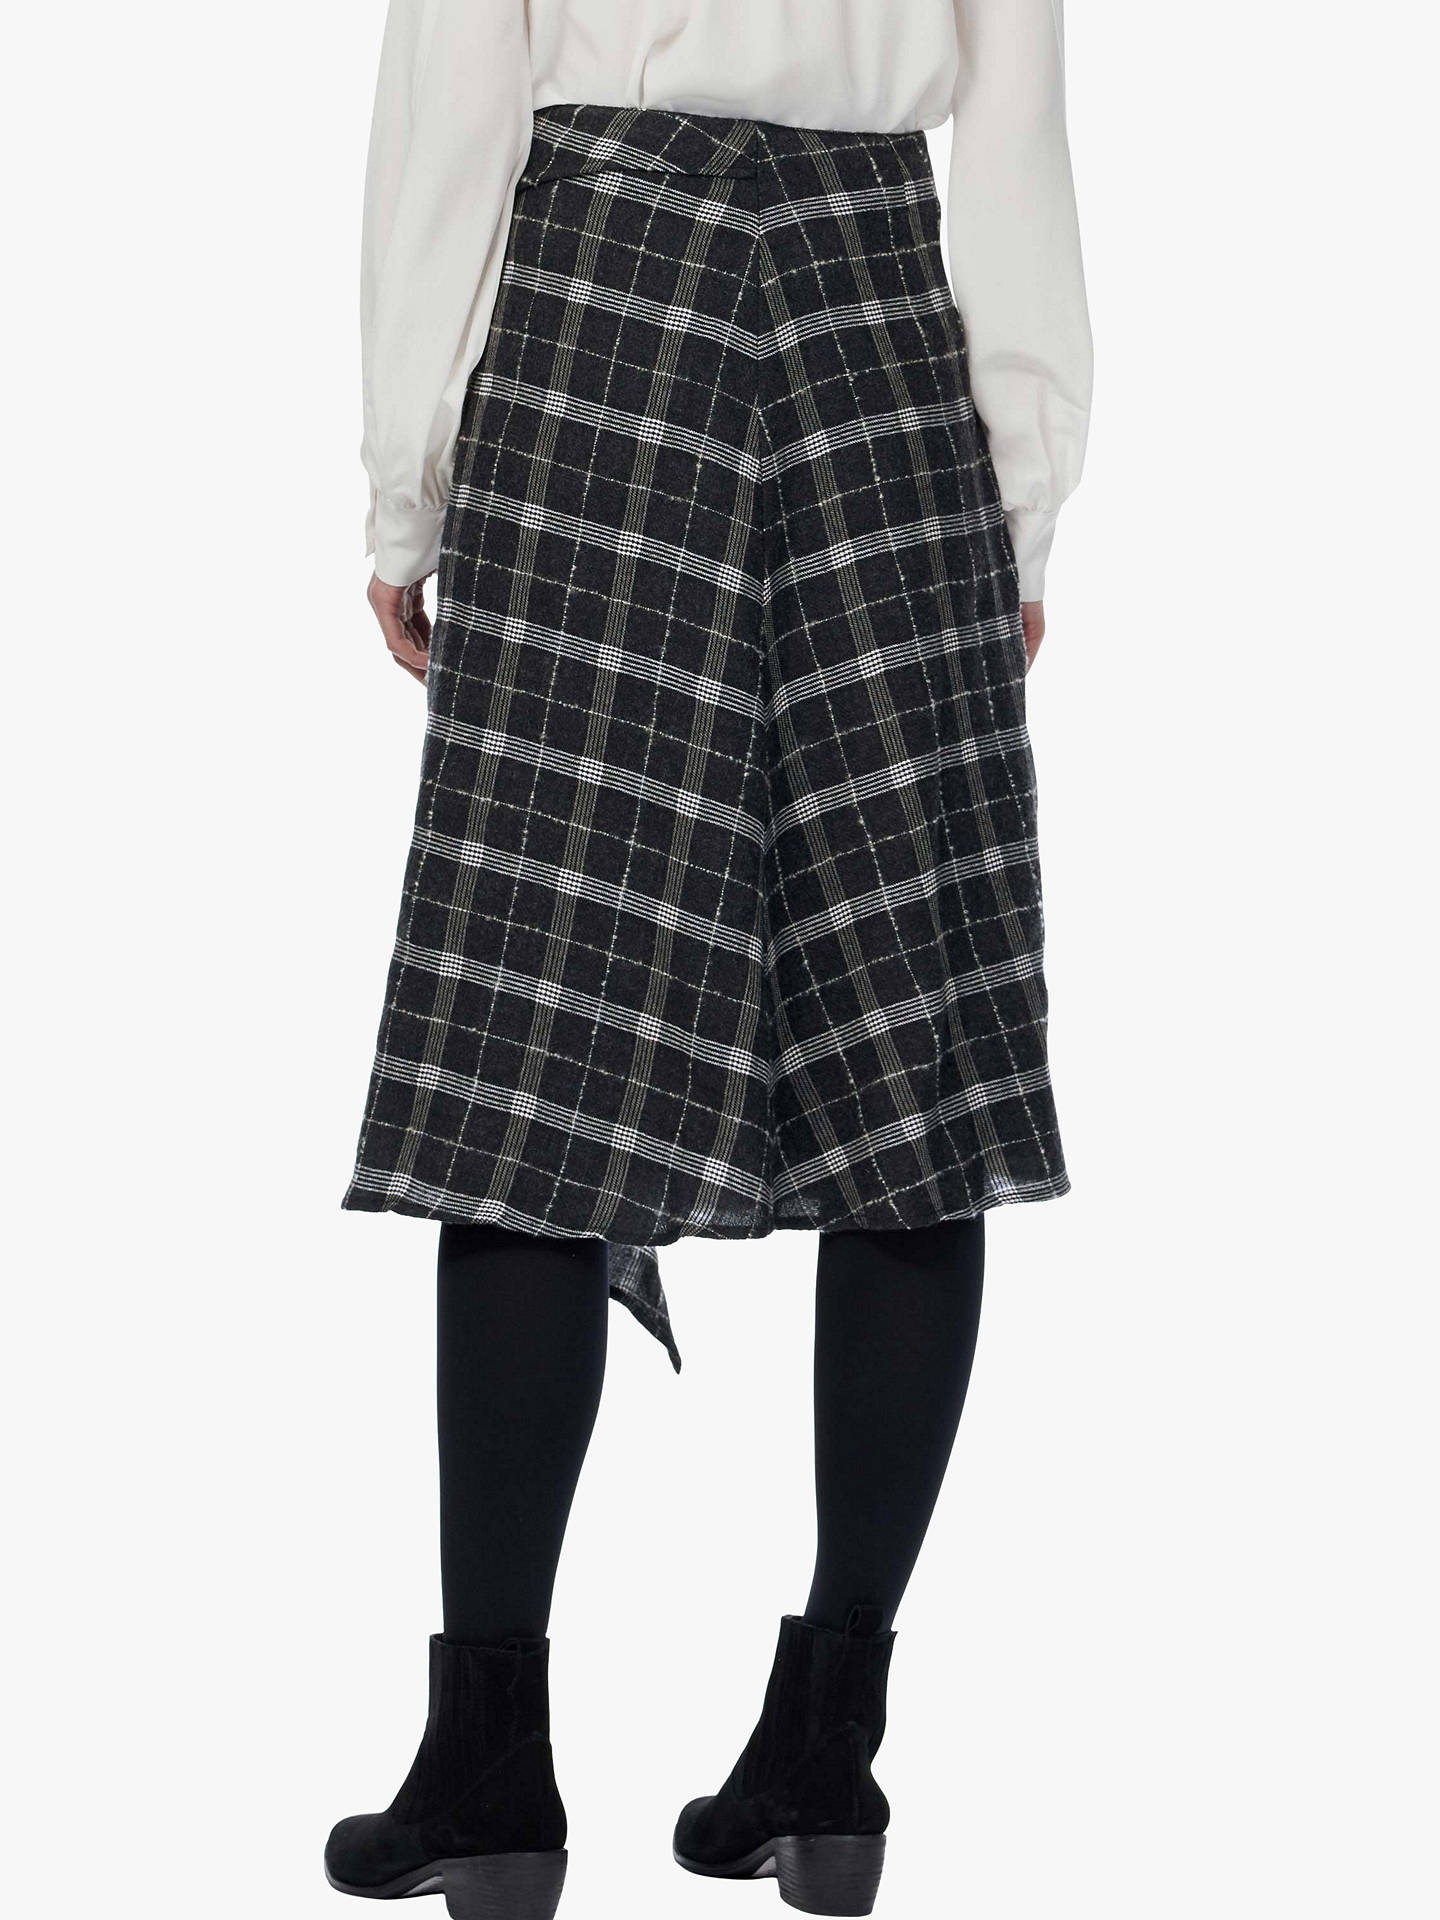 BuyBrora Waterfall Check Wool Skirt, Charcoal, 8 Online at johnlewis.com